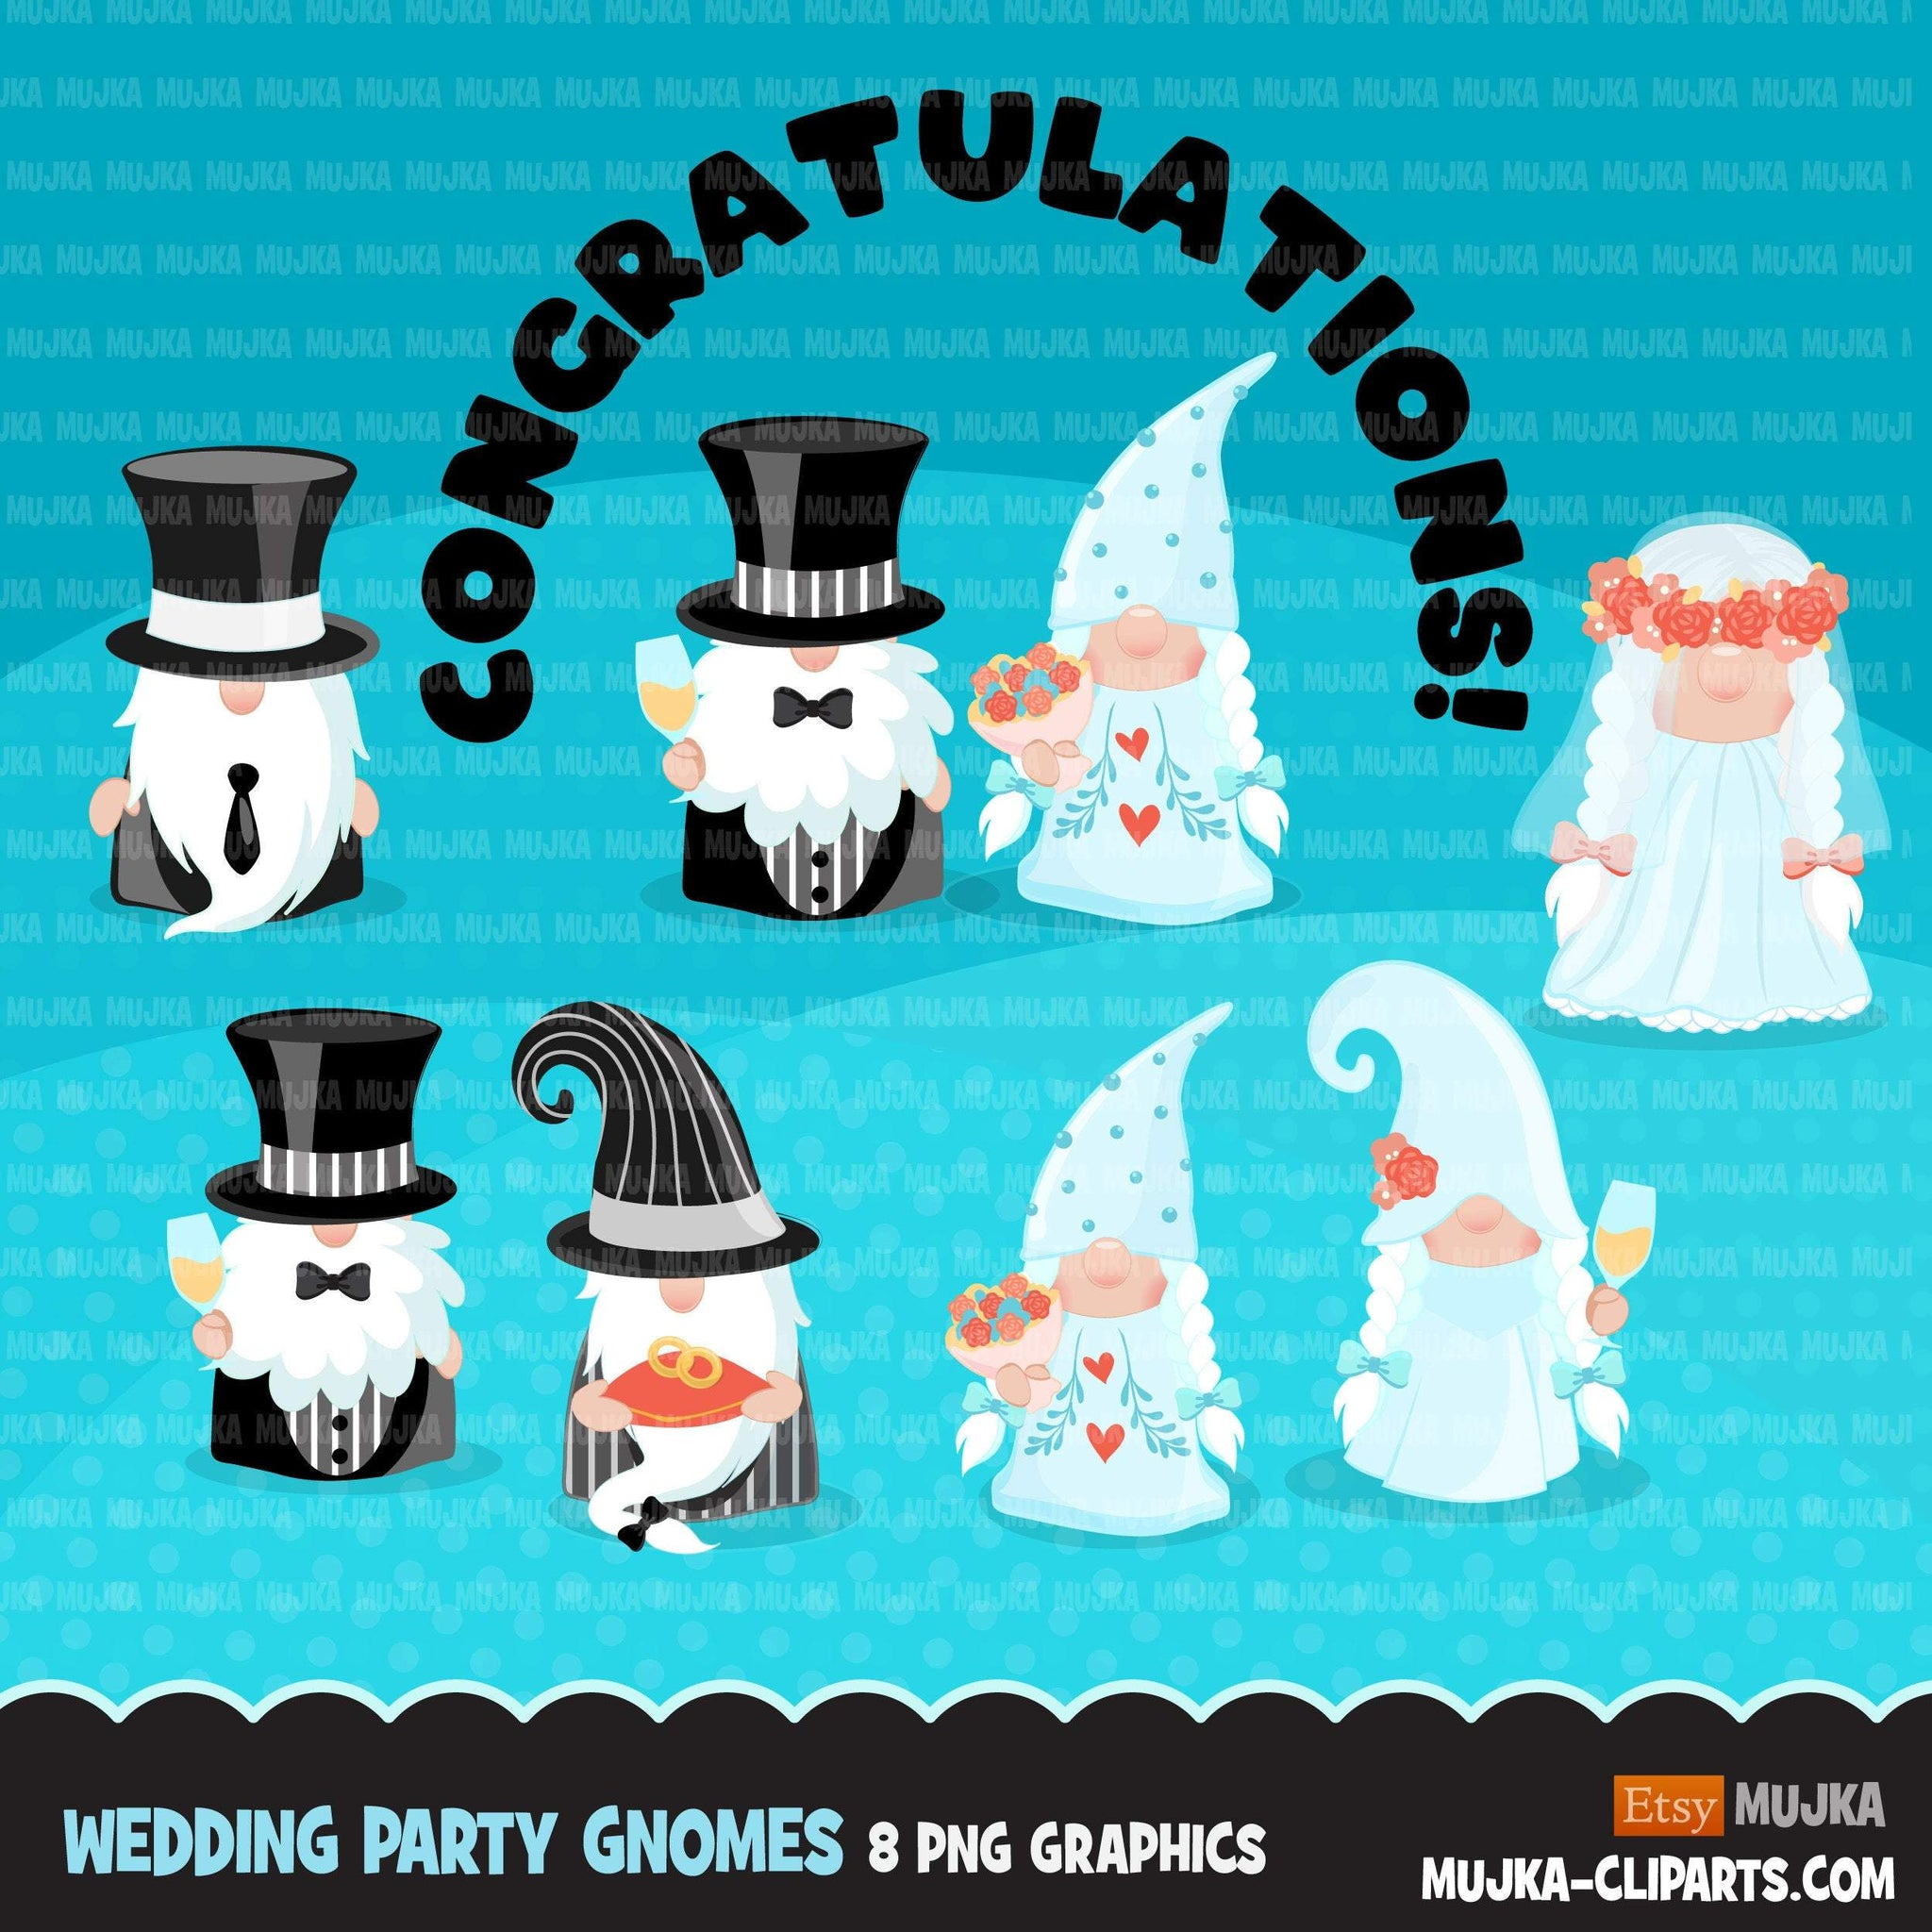 Bride & Groom gnomes, wedding clipart, best man, bridesmaid wedding graphics commercial use Png